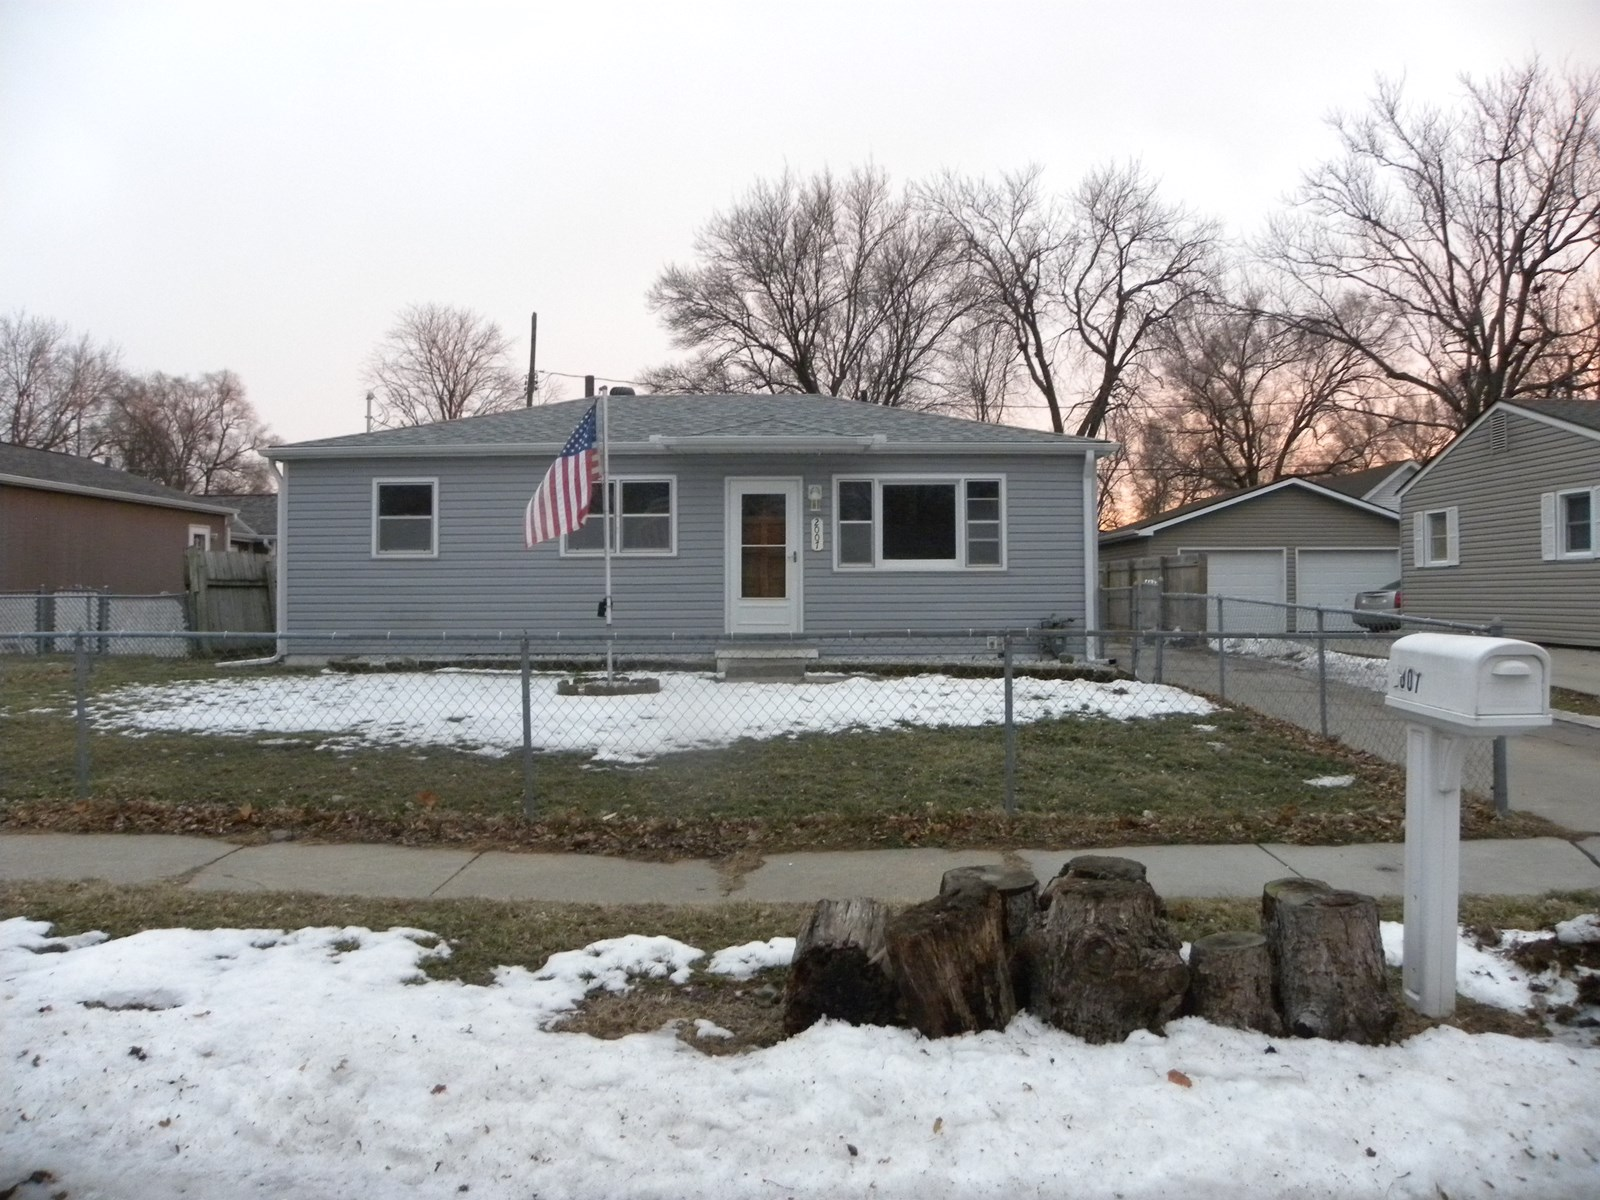 COMPLETELY REMODELED SOUTHWEST IOWA HOME FOR SALE IN TOWN